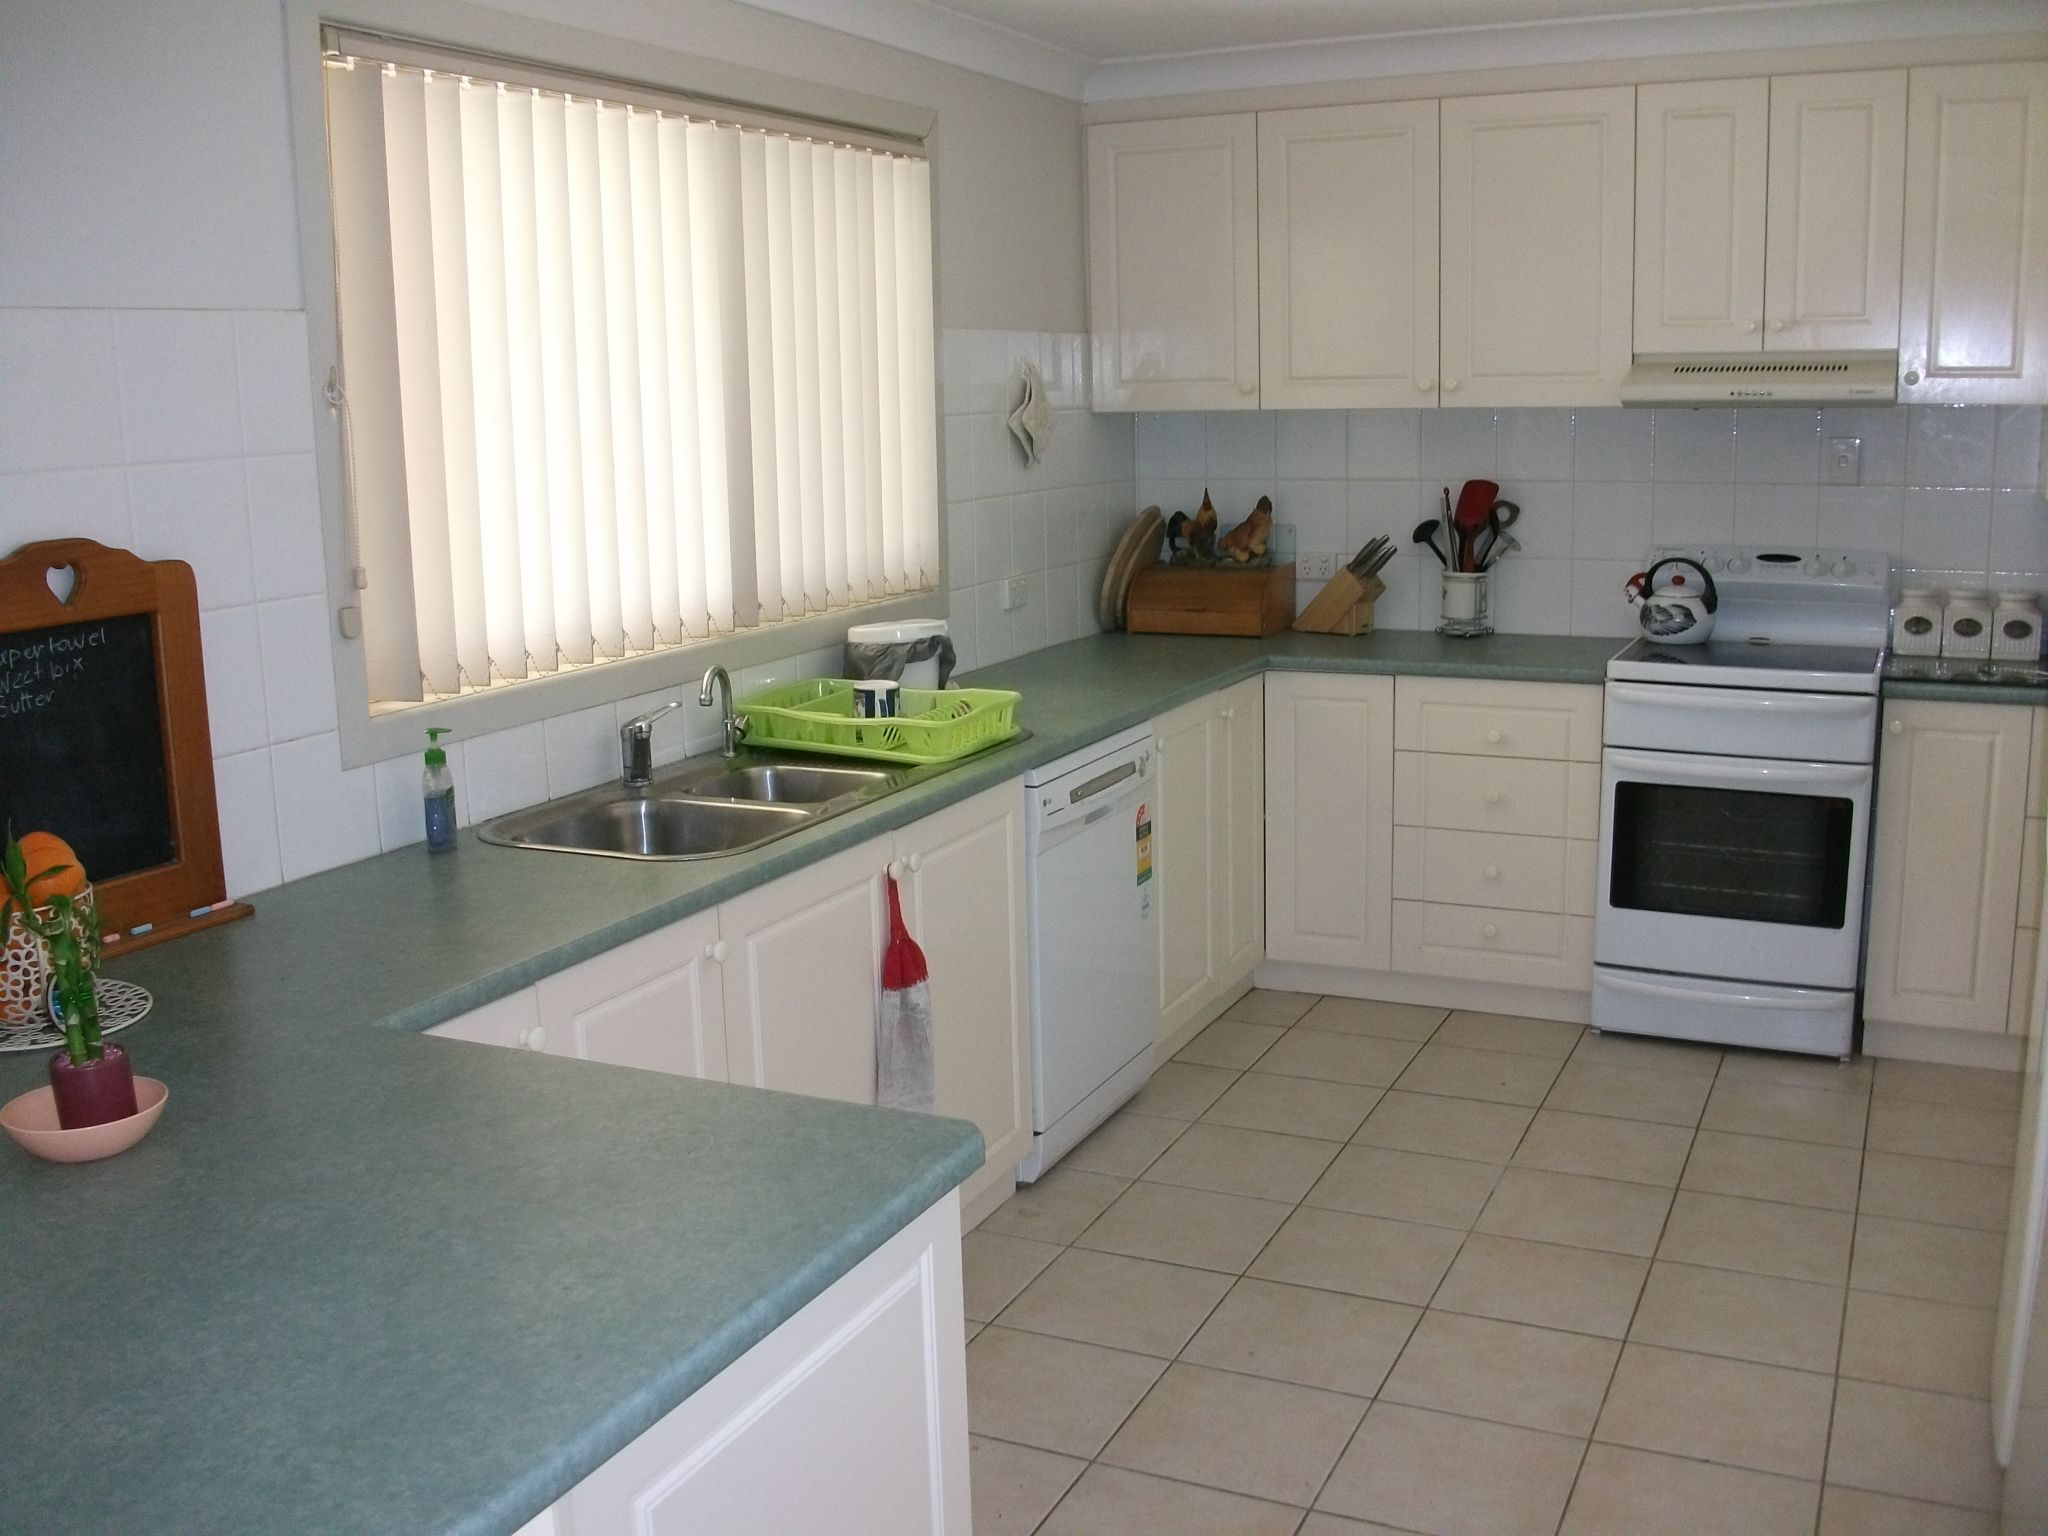 Auction 28 Polo Rd Sat Feb 9th 2013 10 00am On Site Kitchen Cabinets Kitchen Home Decor